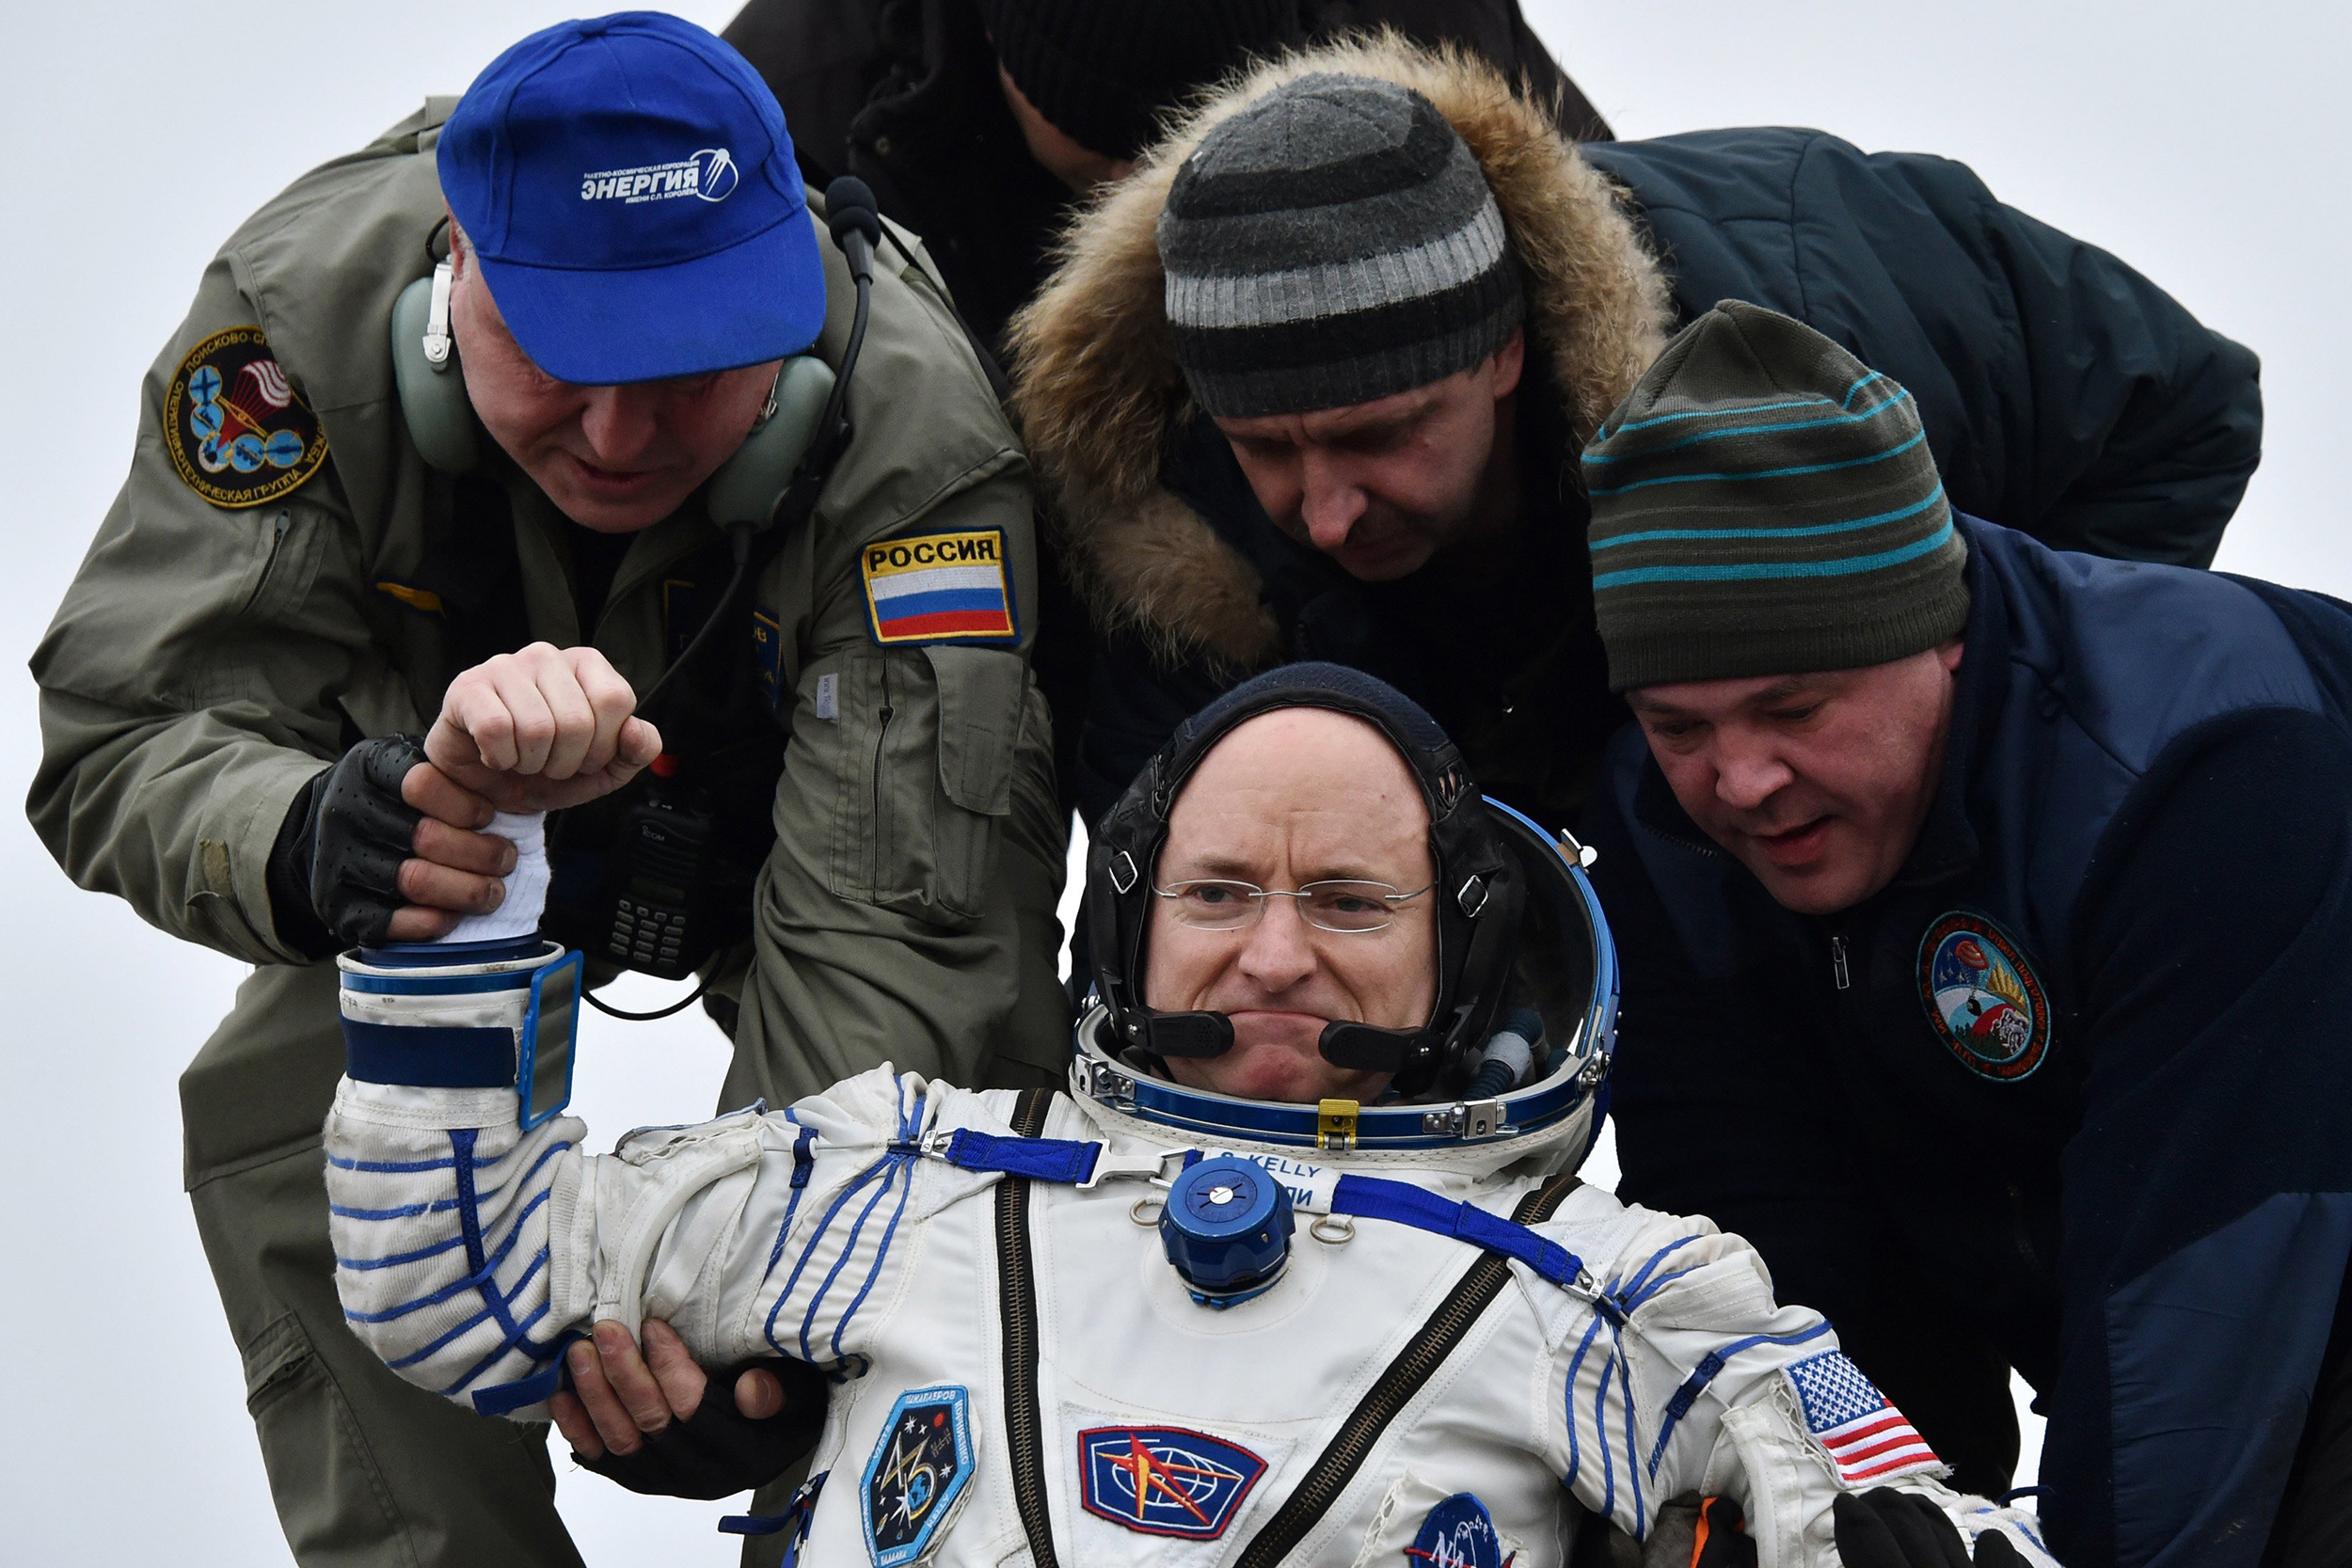 Ground personnel help Scott Kelly get off the Soyuz TMA-18M space capsule after landing in Kazakhstan on March 2, 2016.